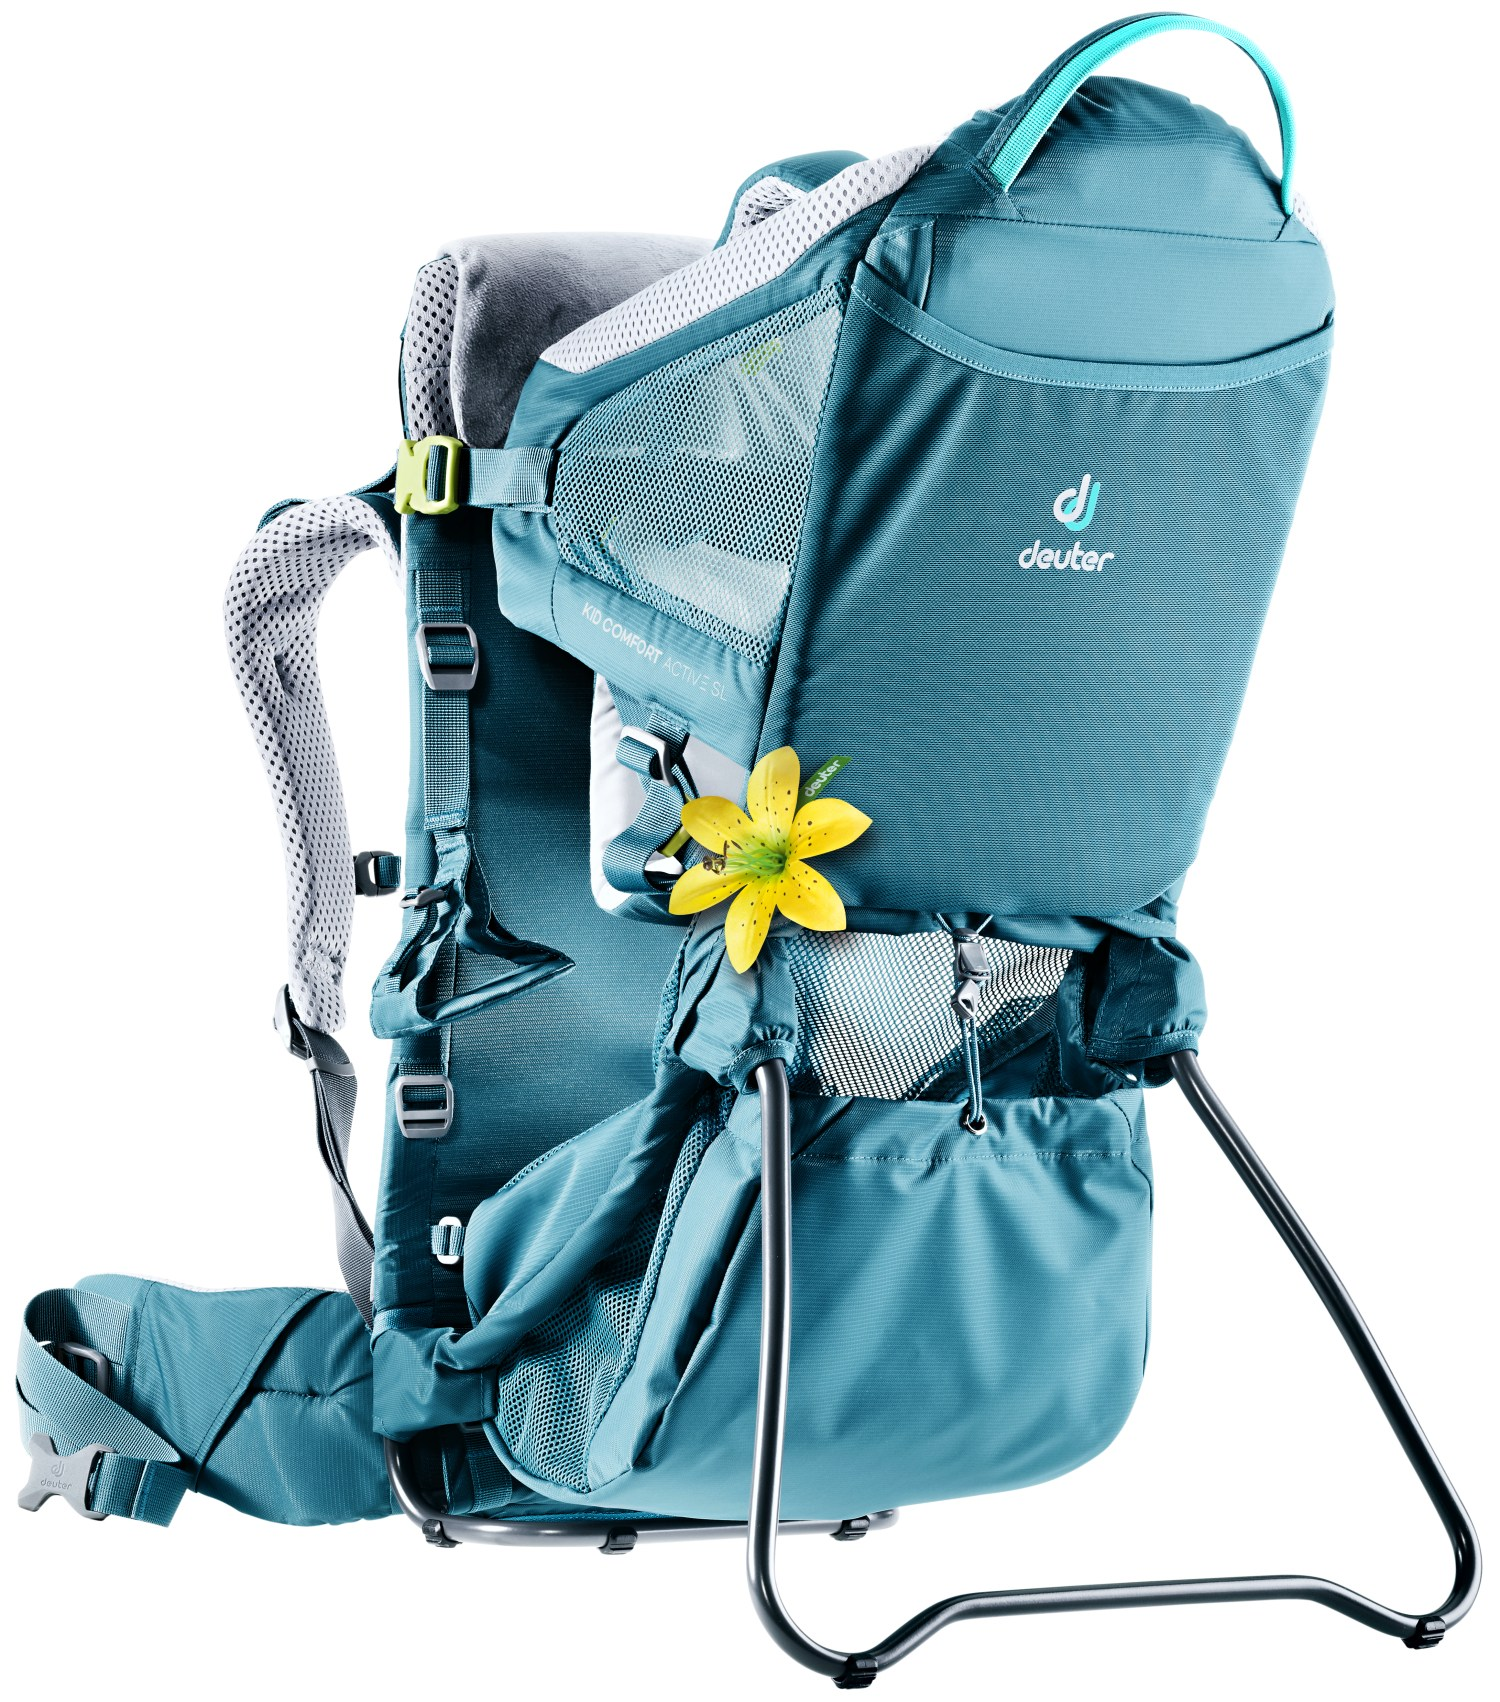 Deuter Kid Comfort Active SL Child Carrier - Women's